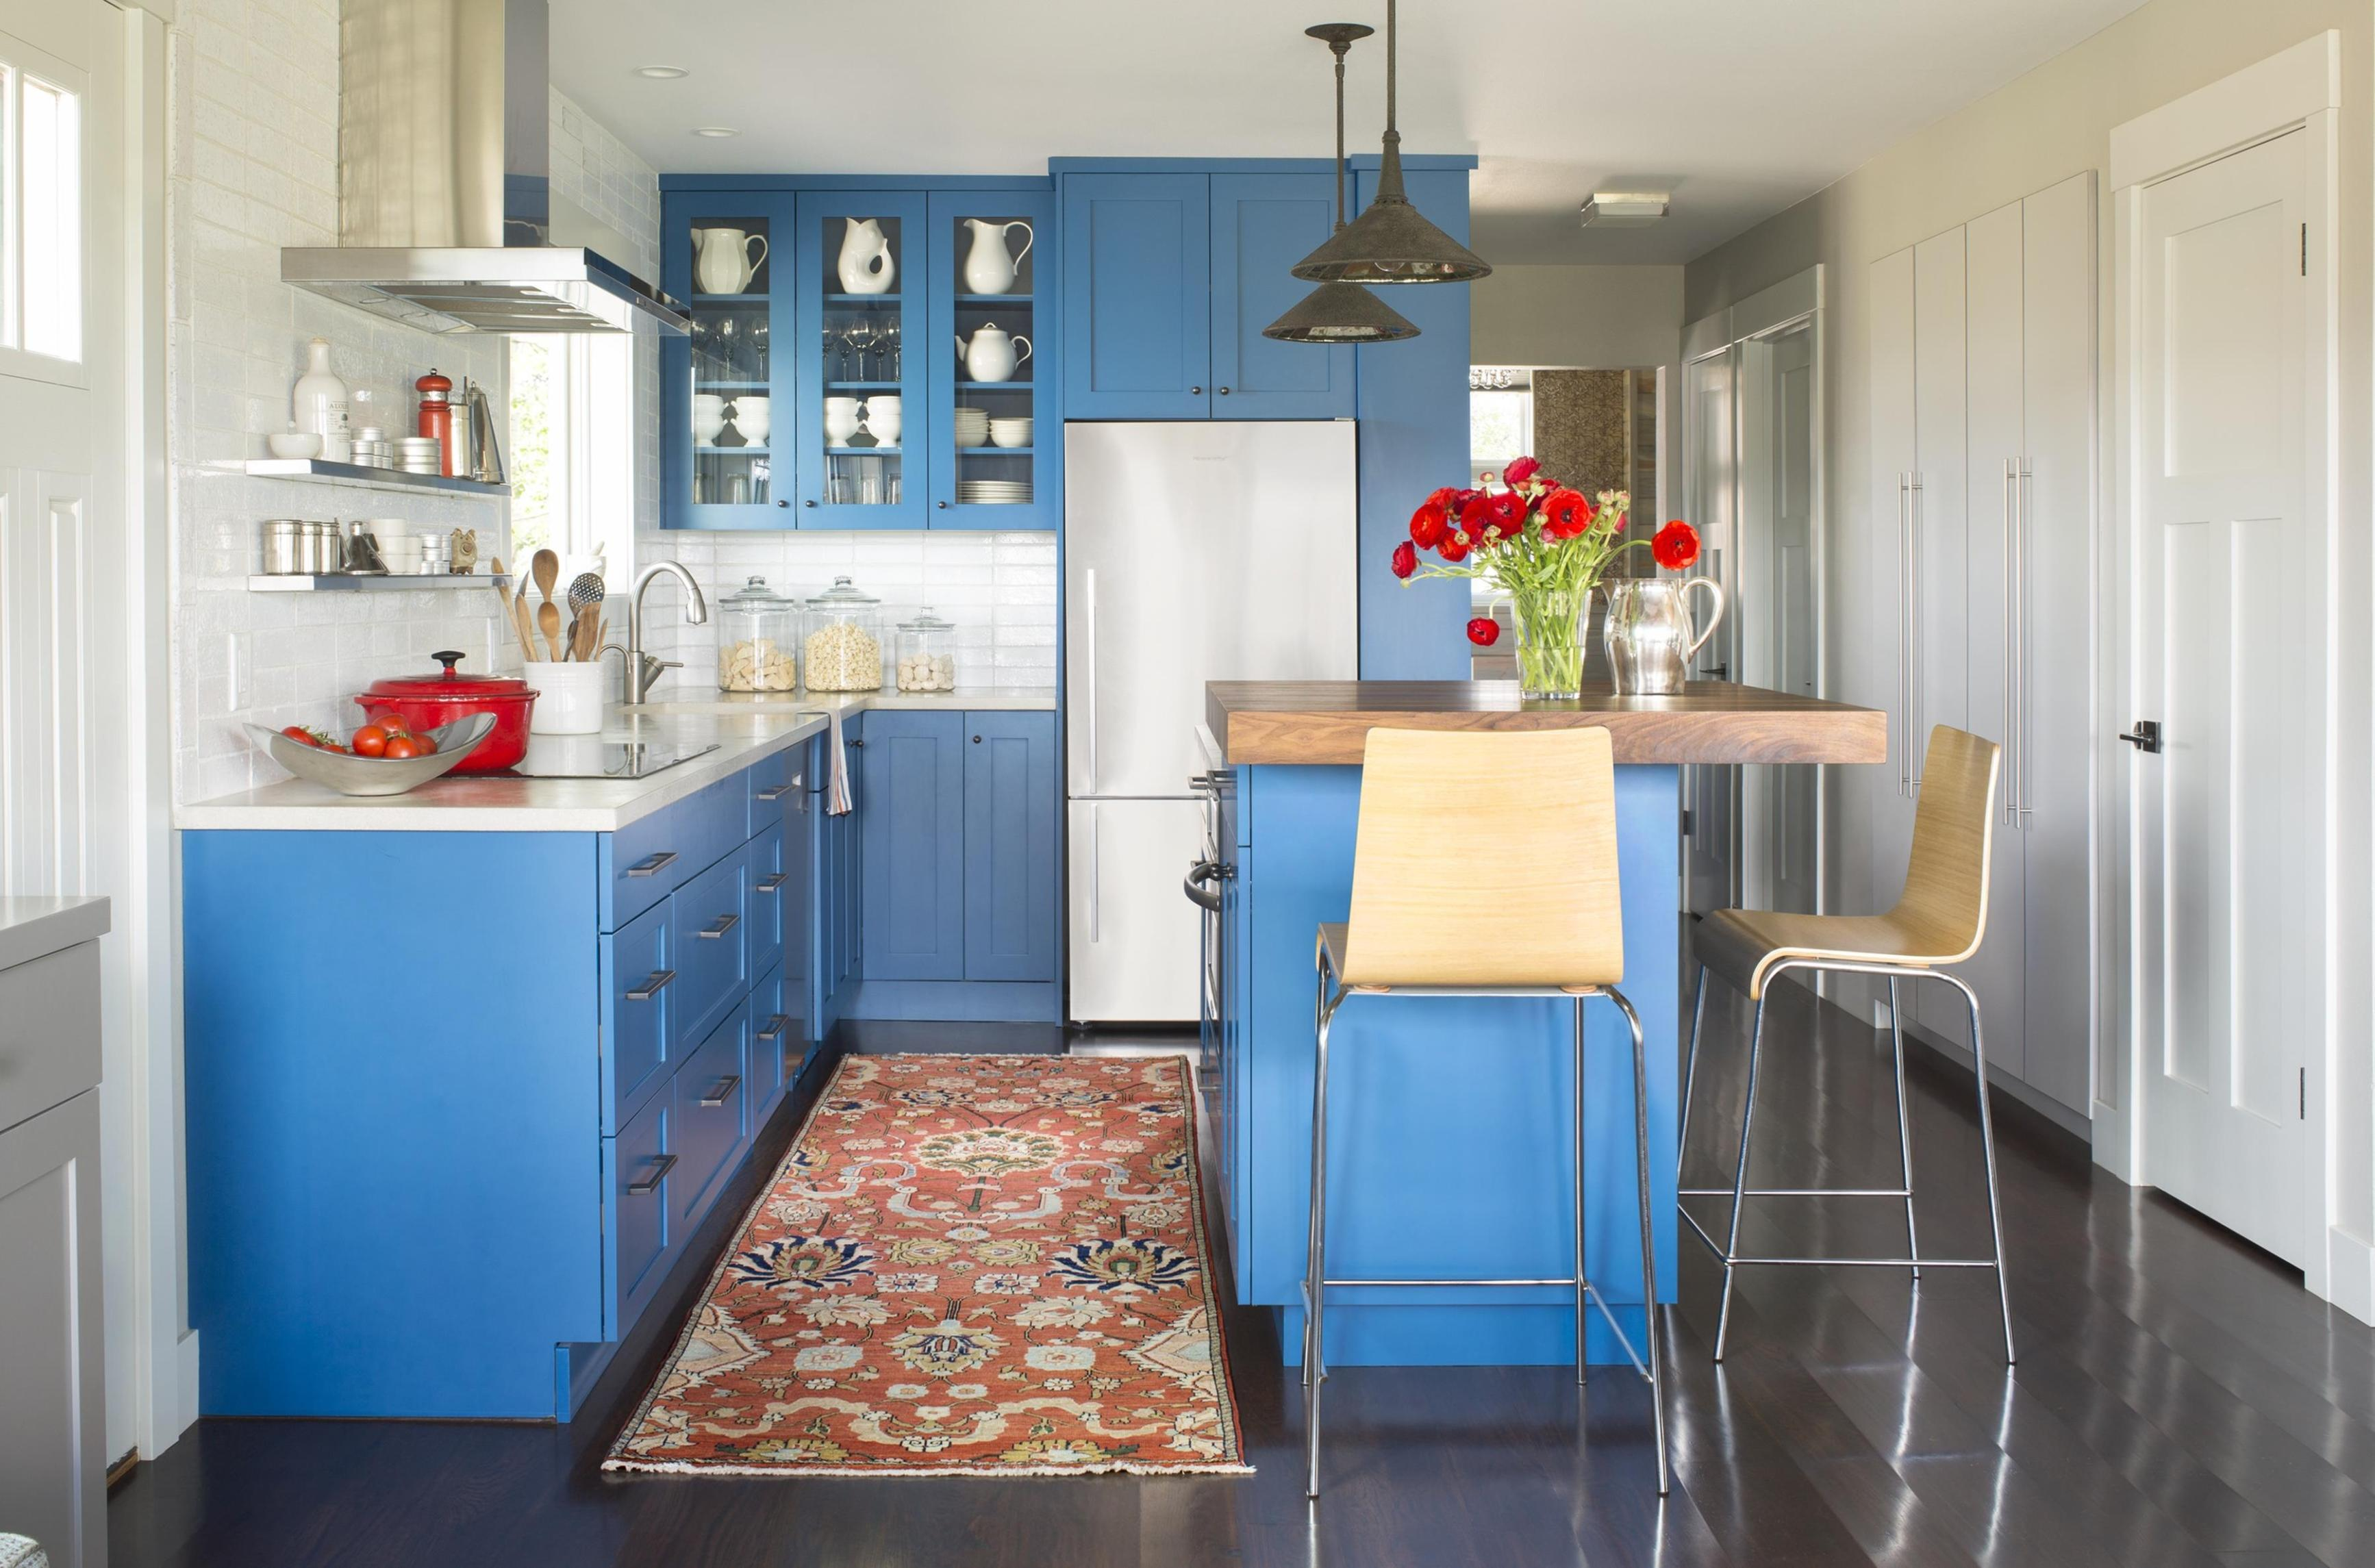 Projects to Make Kitchen More Neat and Beautiful 6